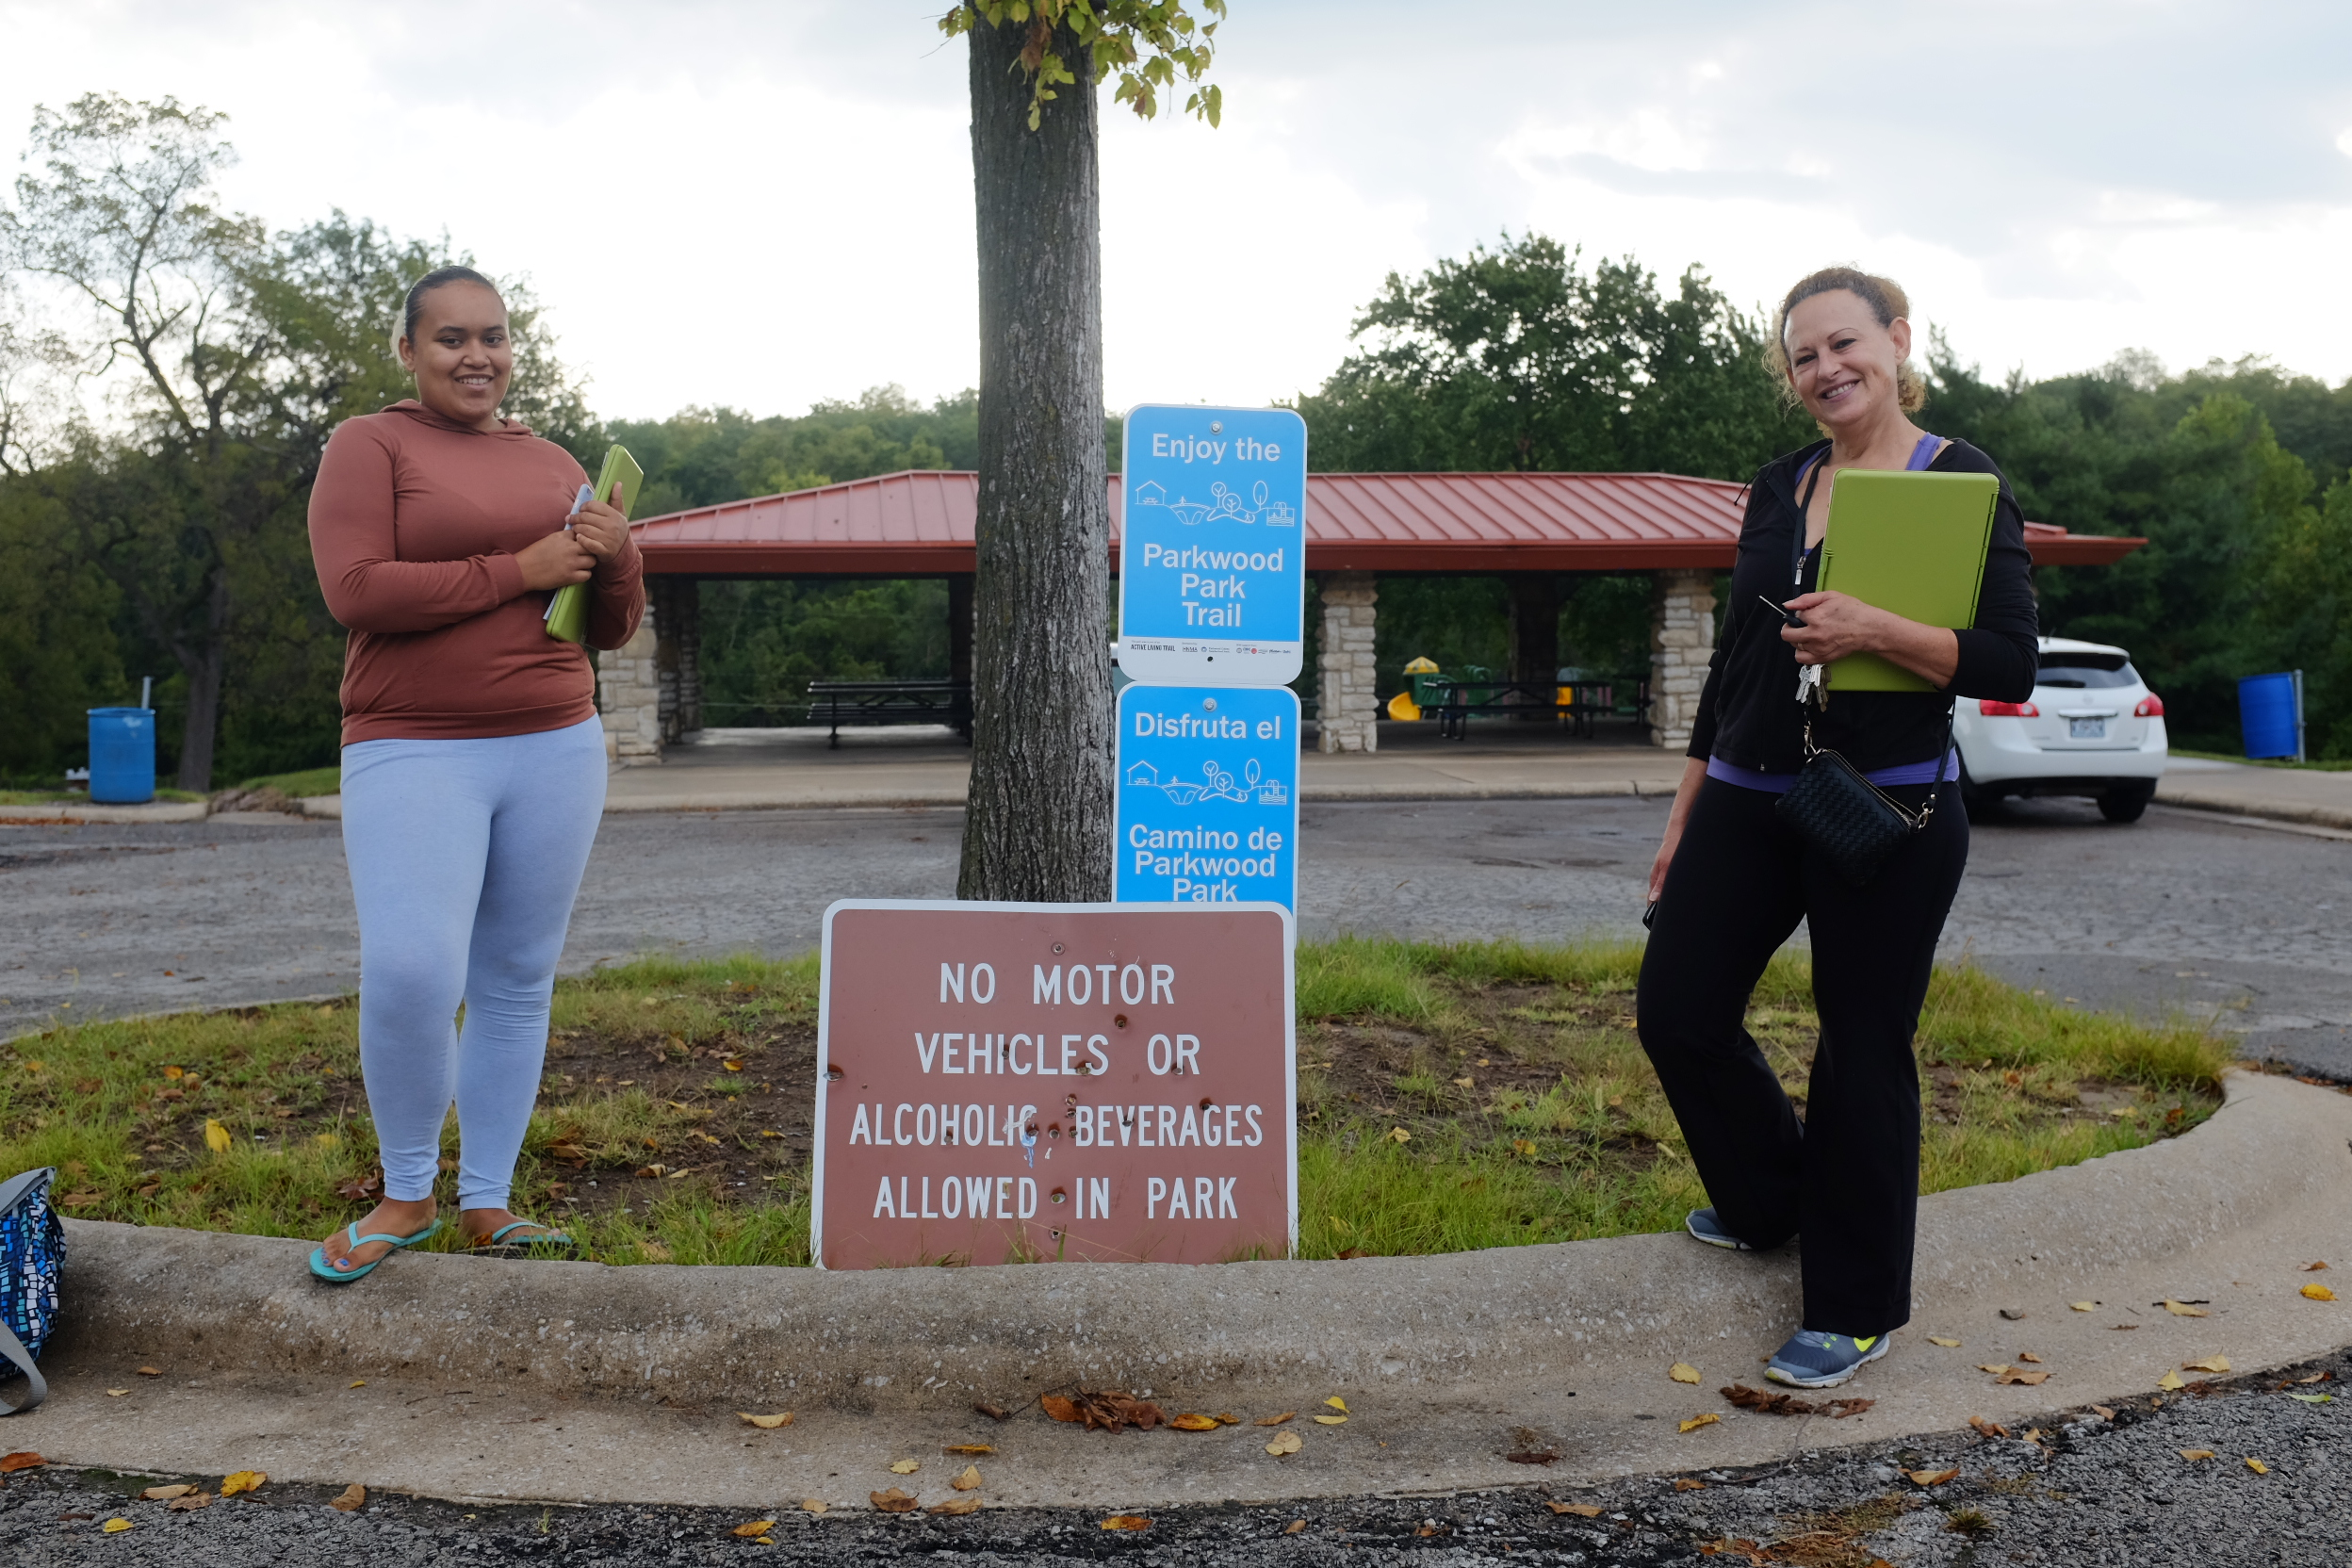 Park observation volunteers Jachai and Maria standing next to a new sign installation.